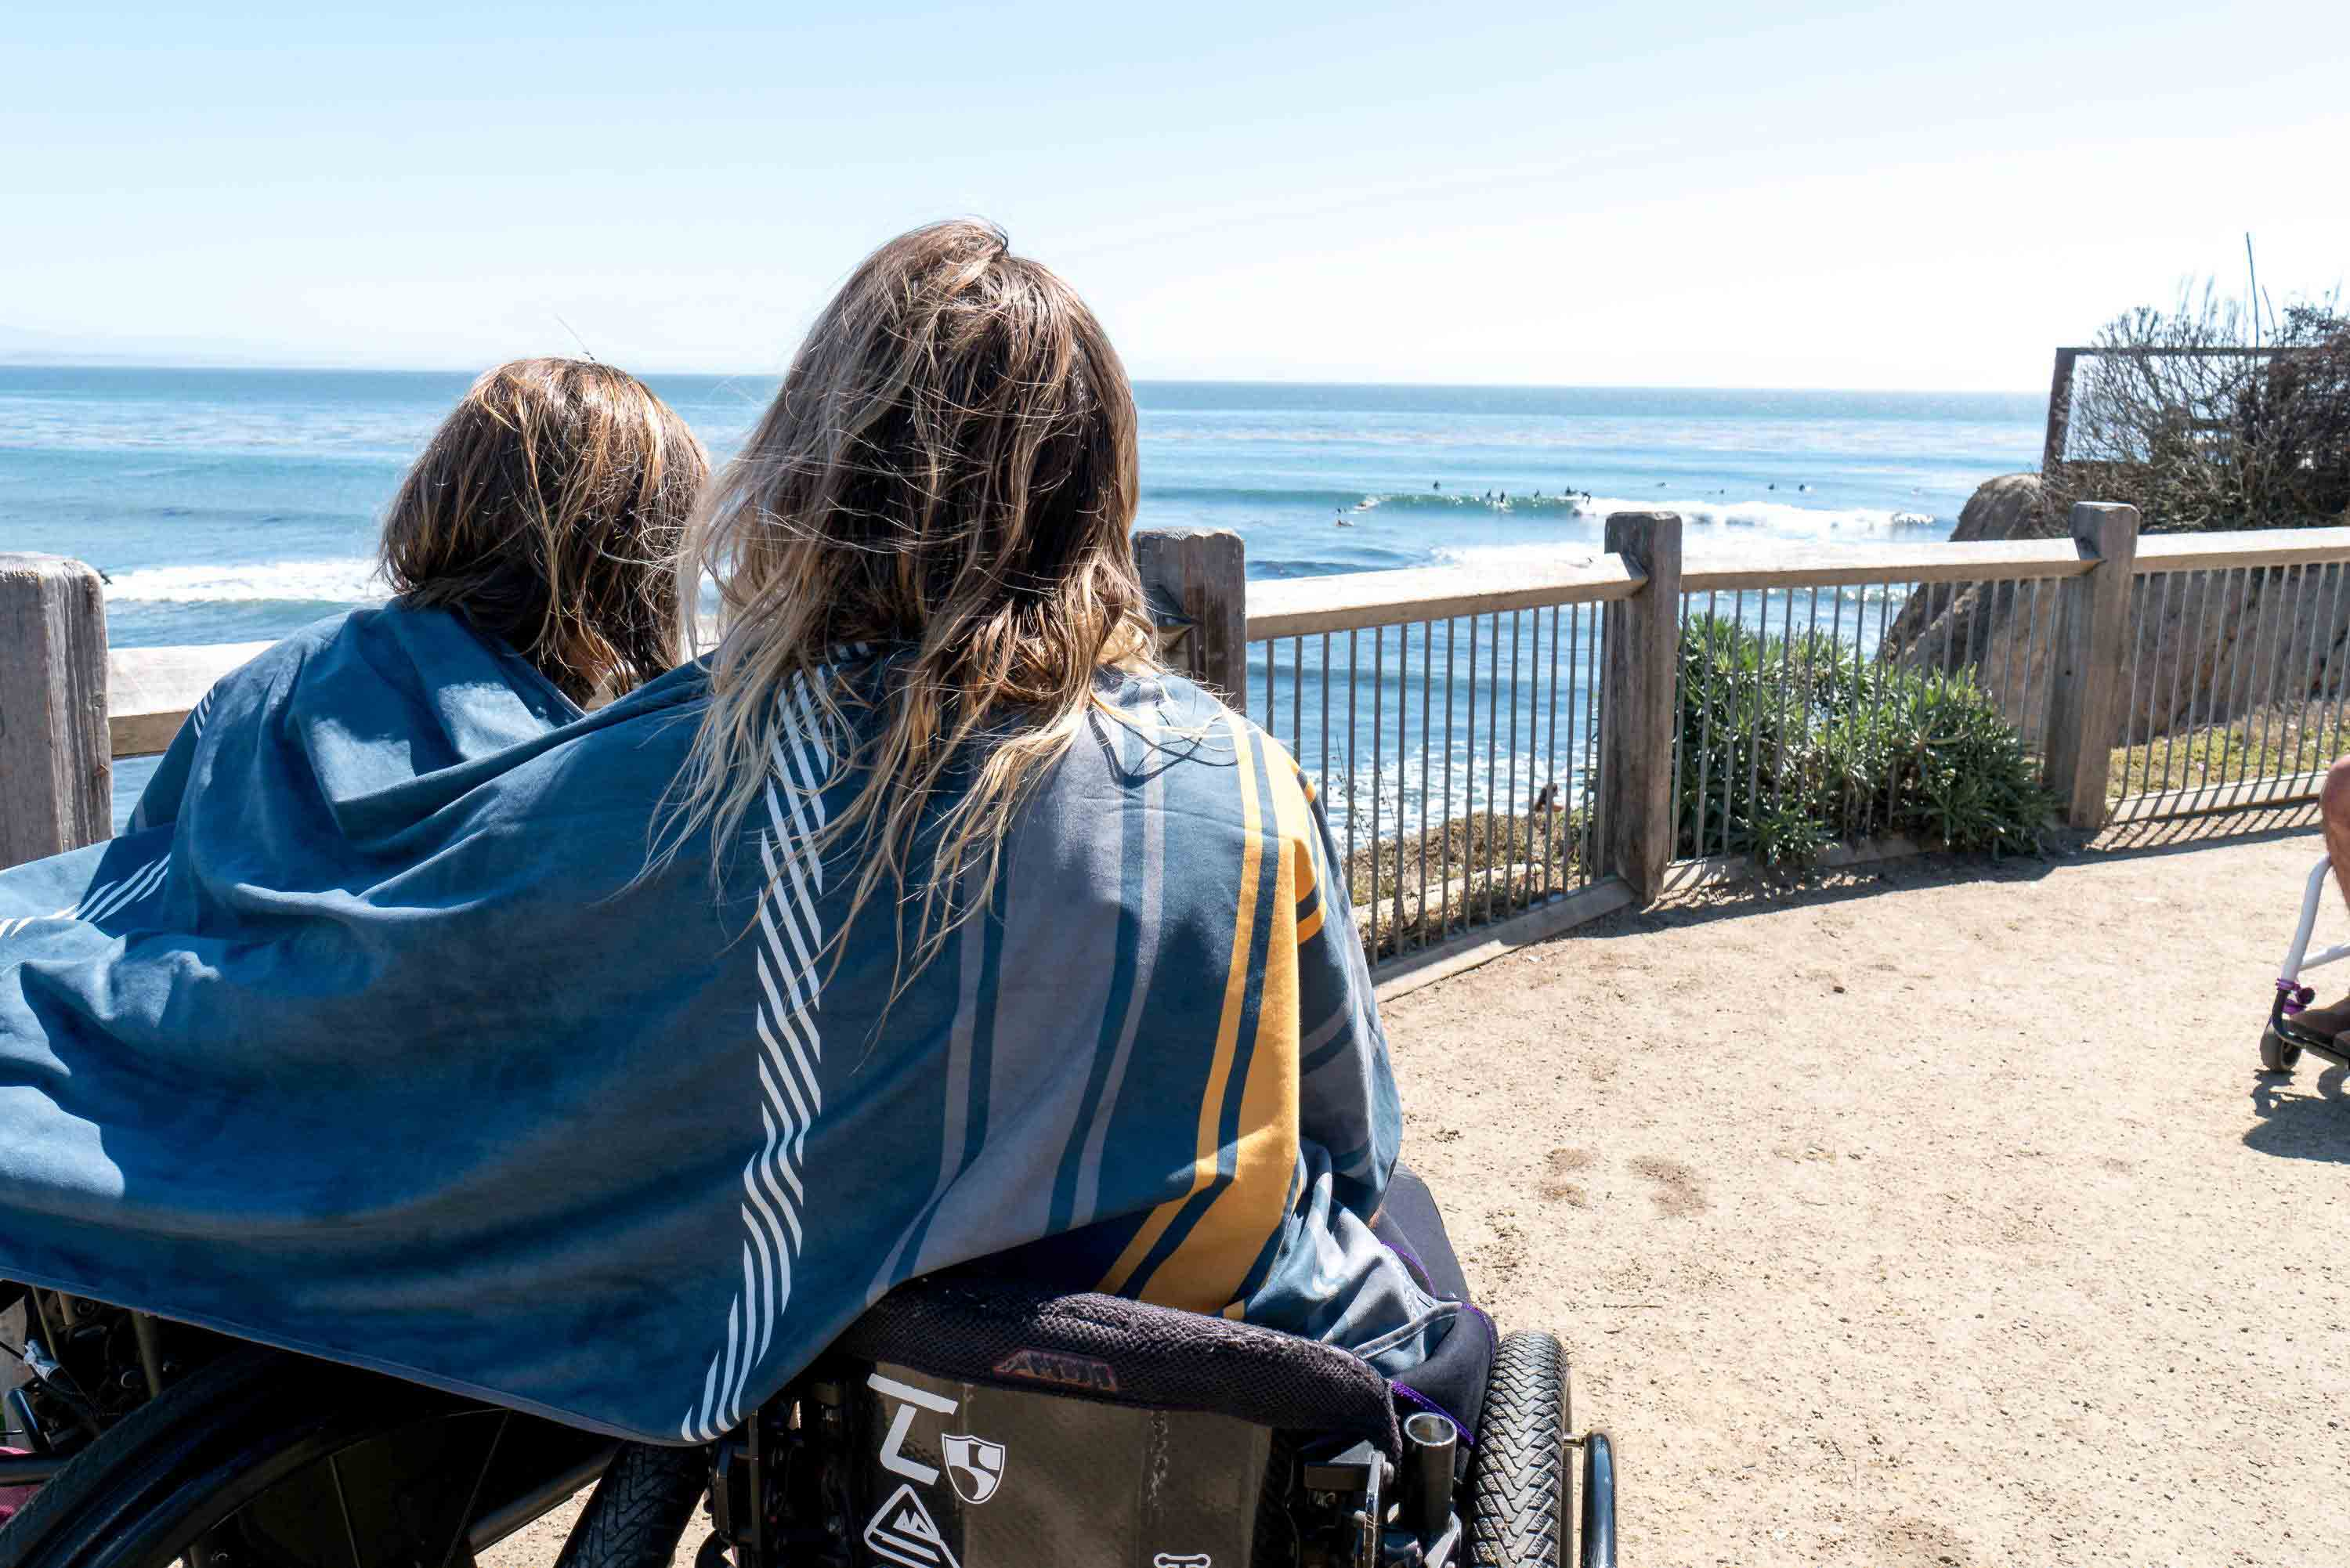 A man and women sitting in wheel chairs with High Fives Shammy wrapped around them watching surfers